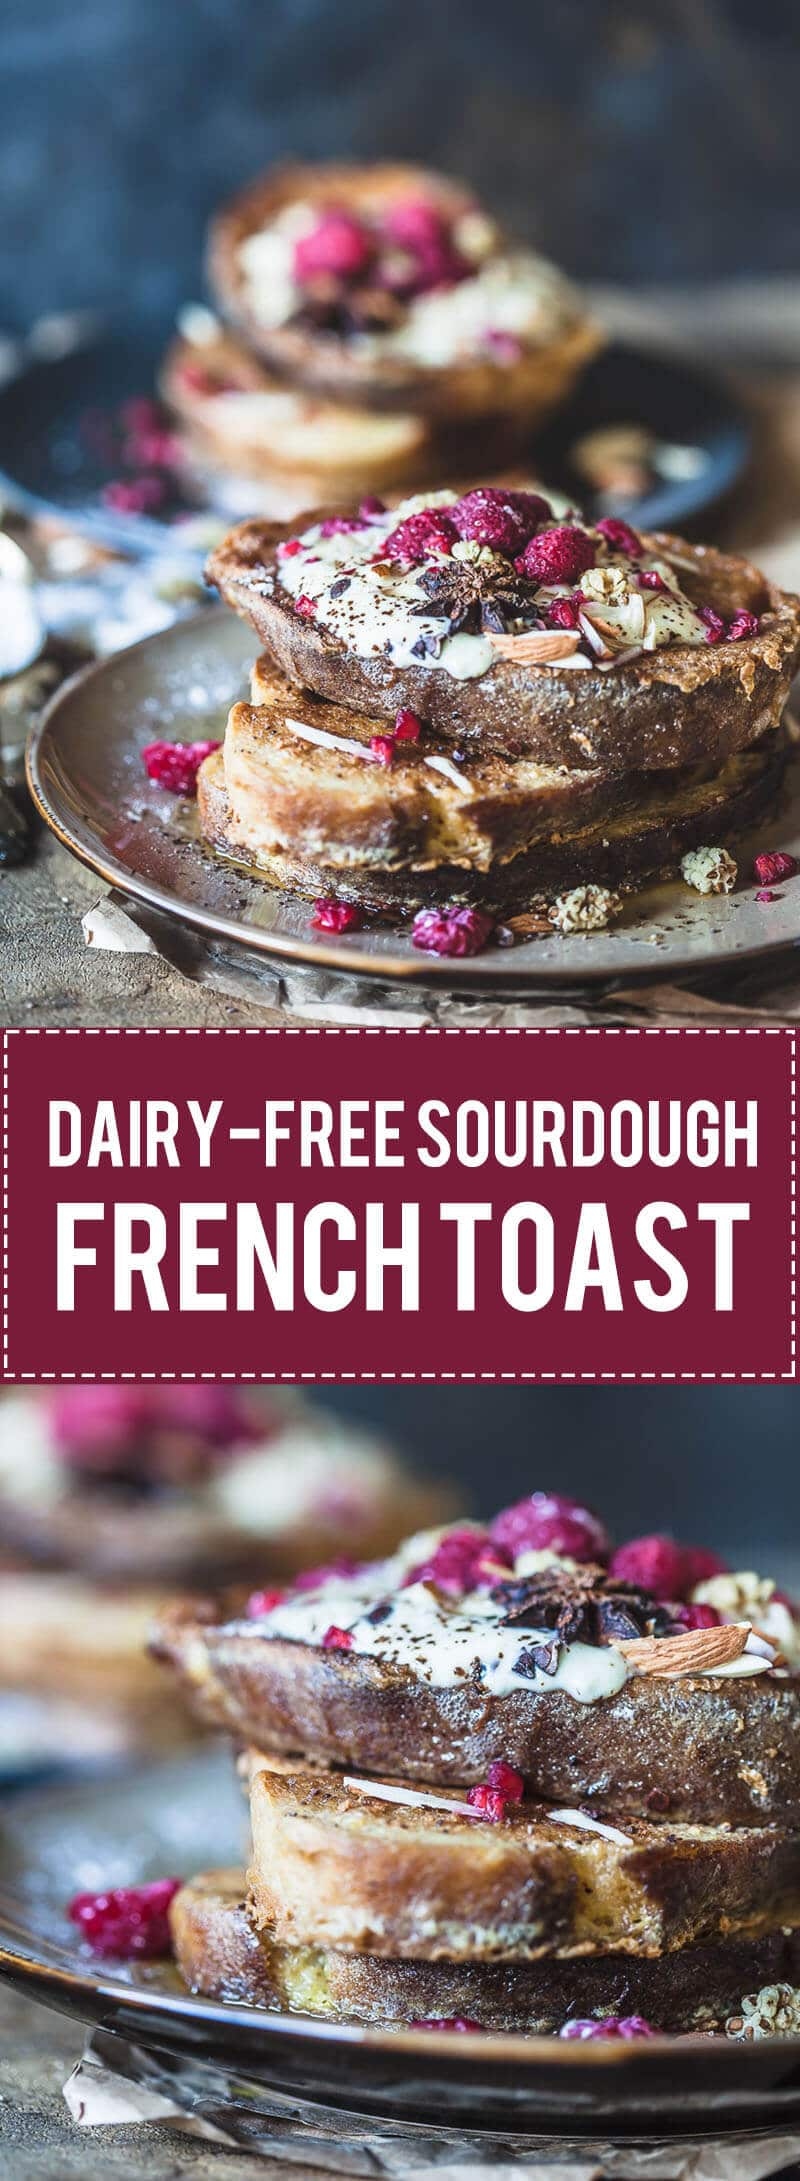 Dairy-Free Sourdough French Toast is the perfect and delicious way to use up stale sourdough bread.